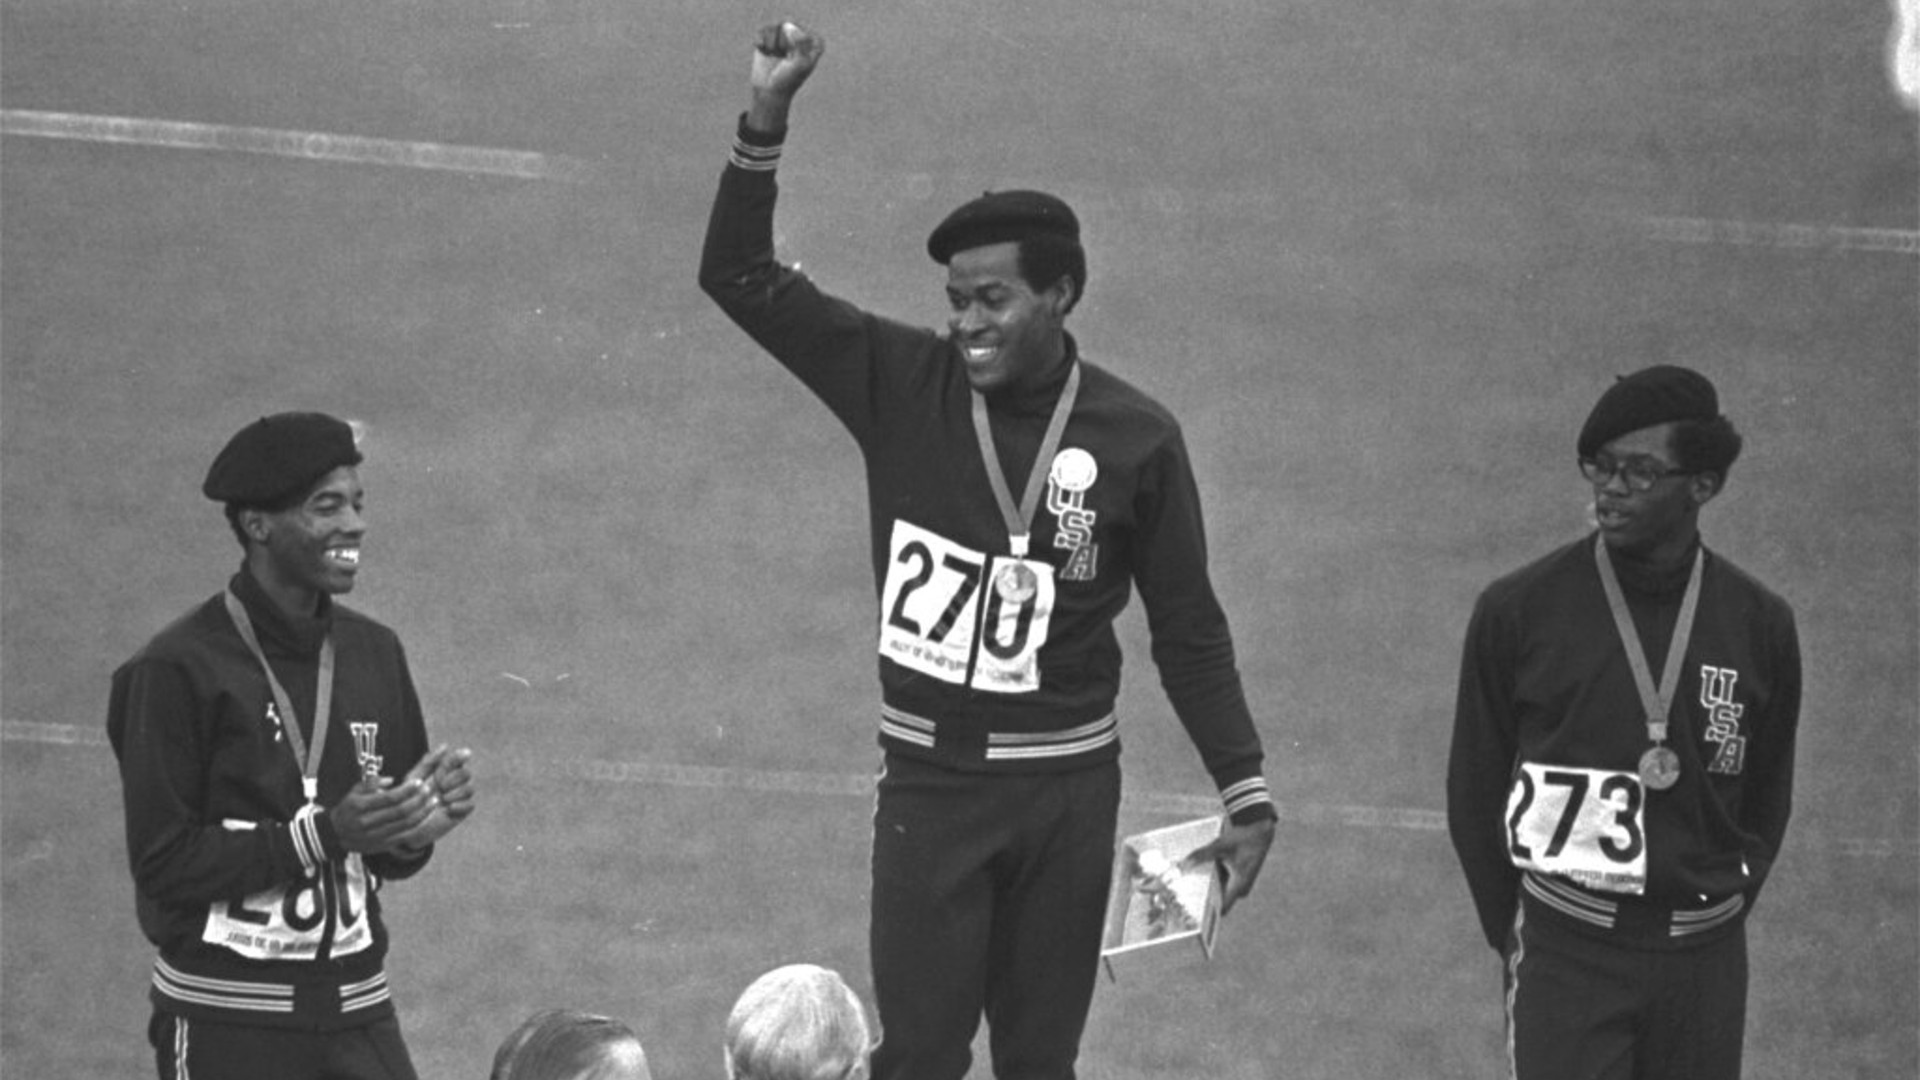 United States runners Larry James, left, Lee Evans, center, and Ron Freeman are shown after receiving their medals for the 400-meter race at the Mexico City Games in Mexico City, in this Oct. 18, 1968, file photo. (AP Photo/File)